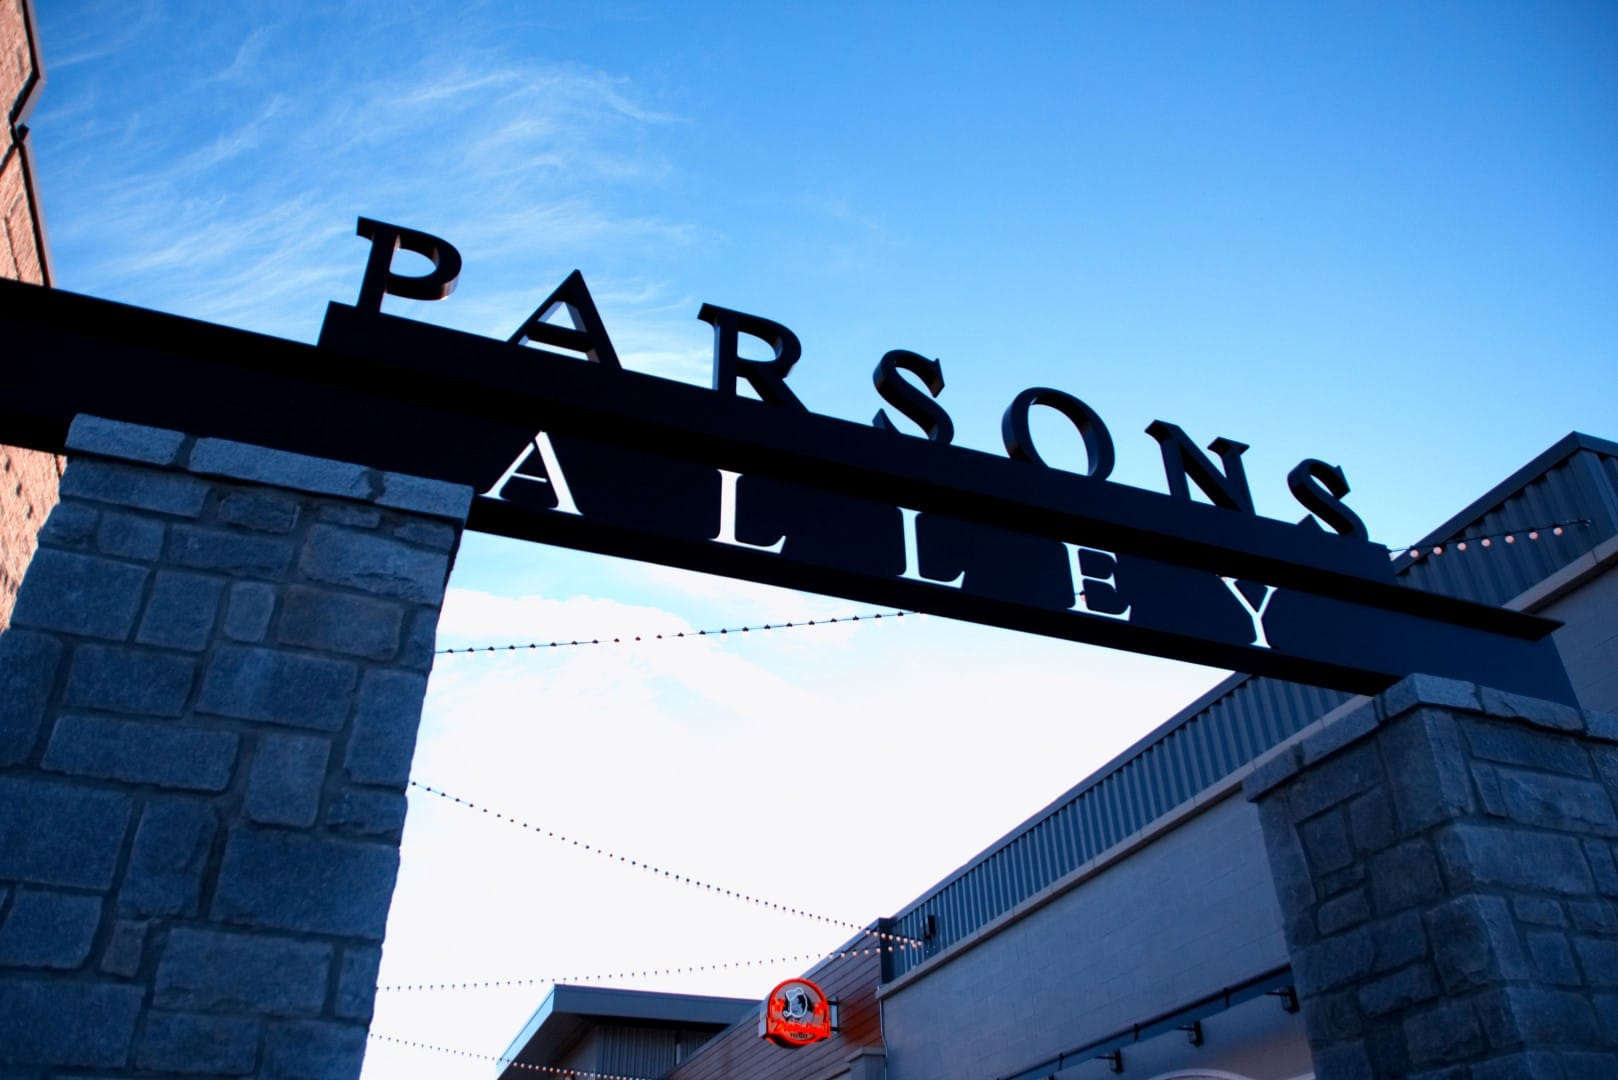 Parsons Alley